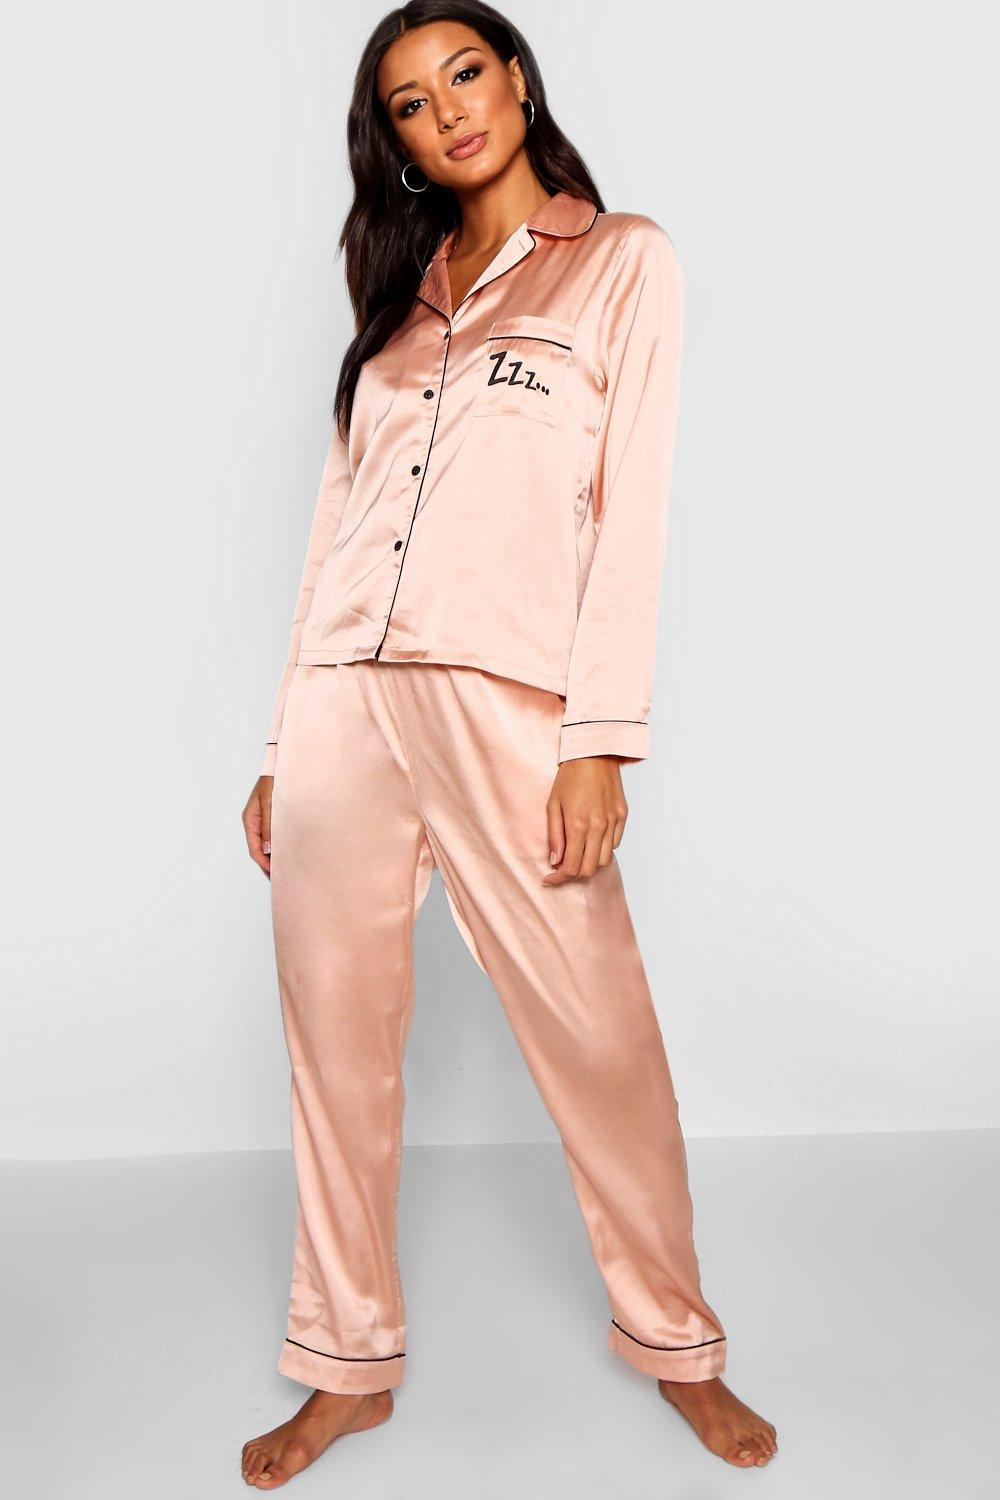 09efd9fcd2 Boohoo Zzz Satin Button Through Short Set in Pink - Lyst